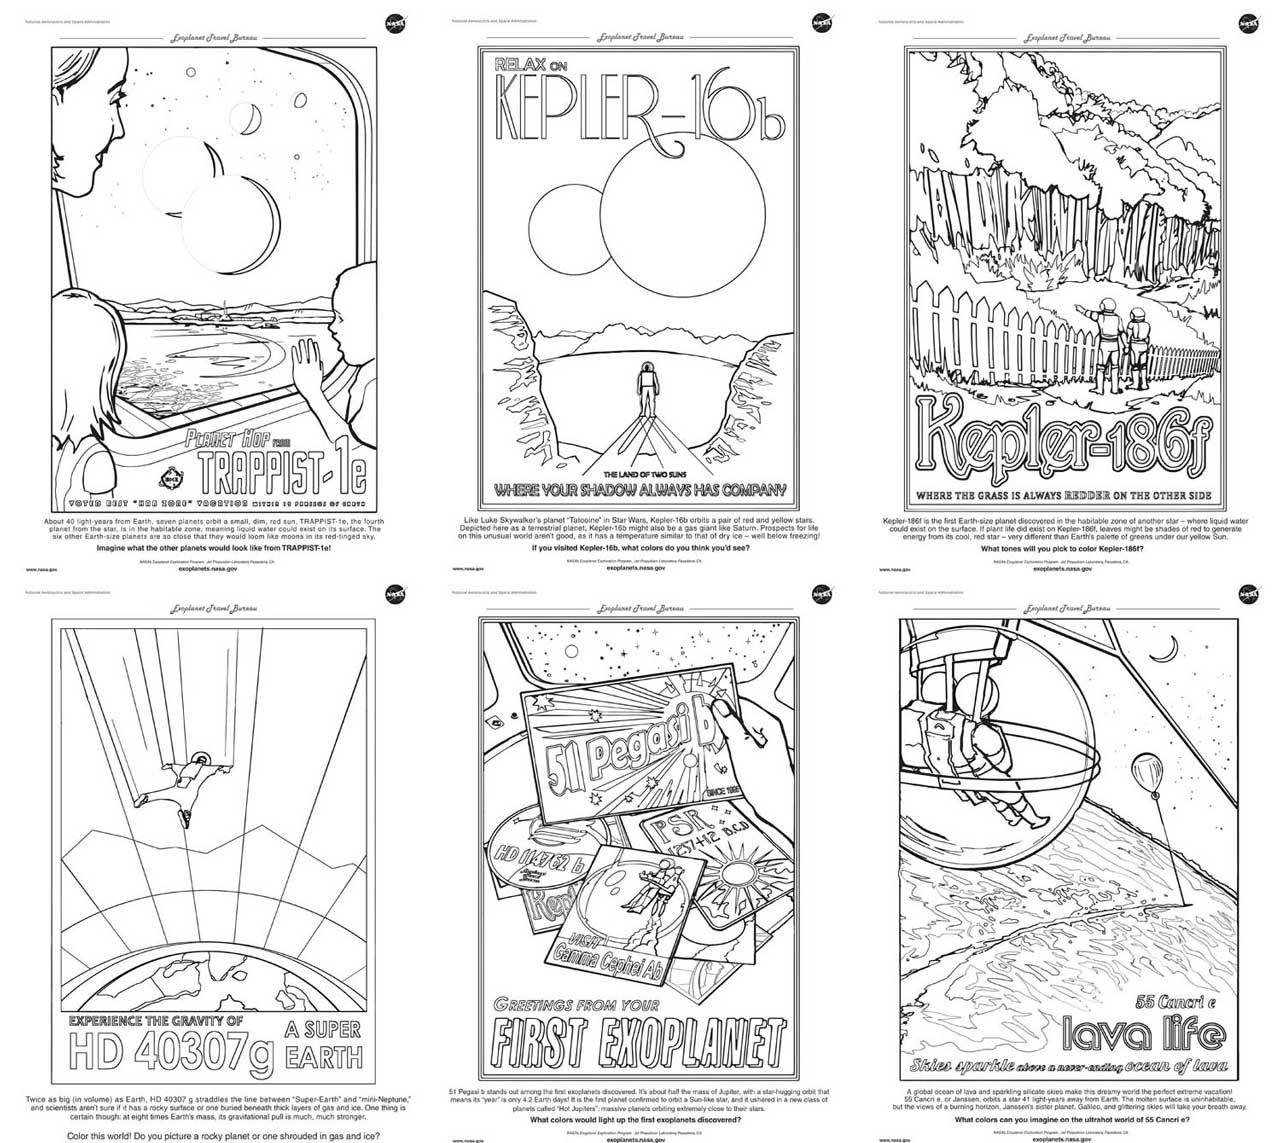 - Exoplanet Travel Bureau Coloring Book – Exoplanet Exploration